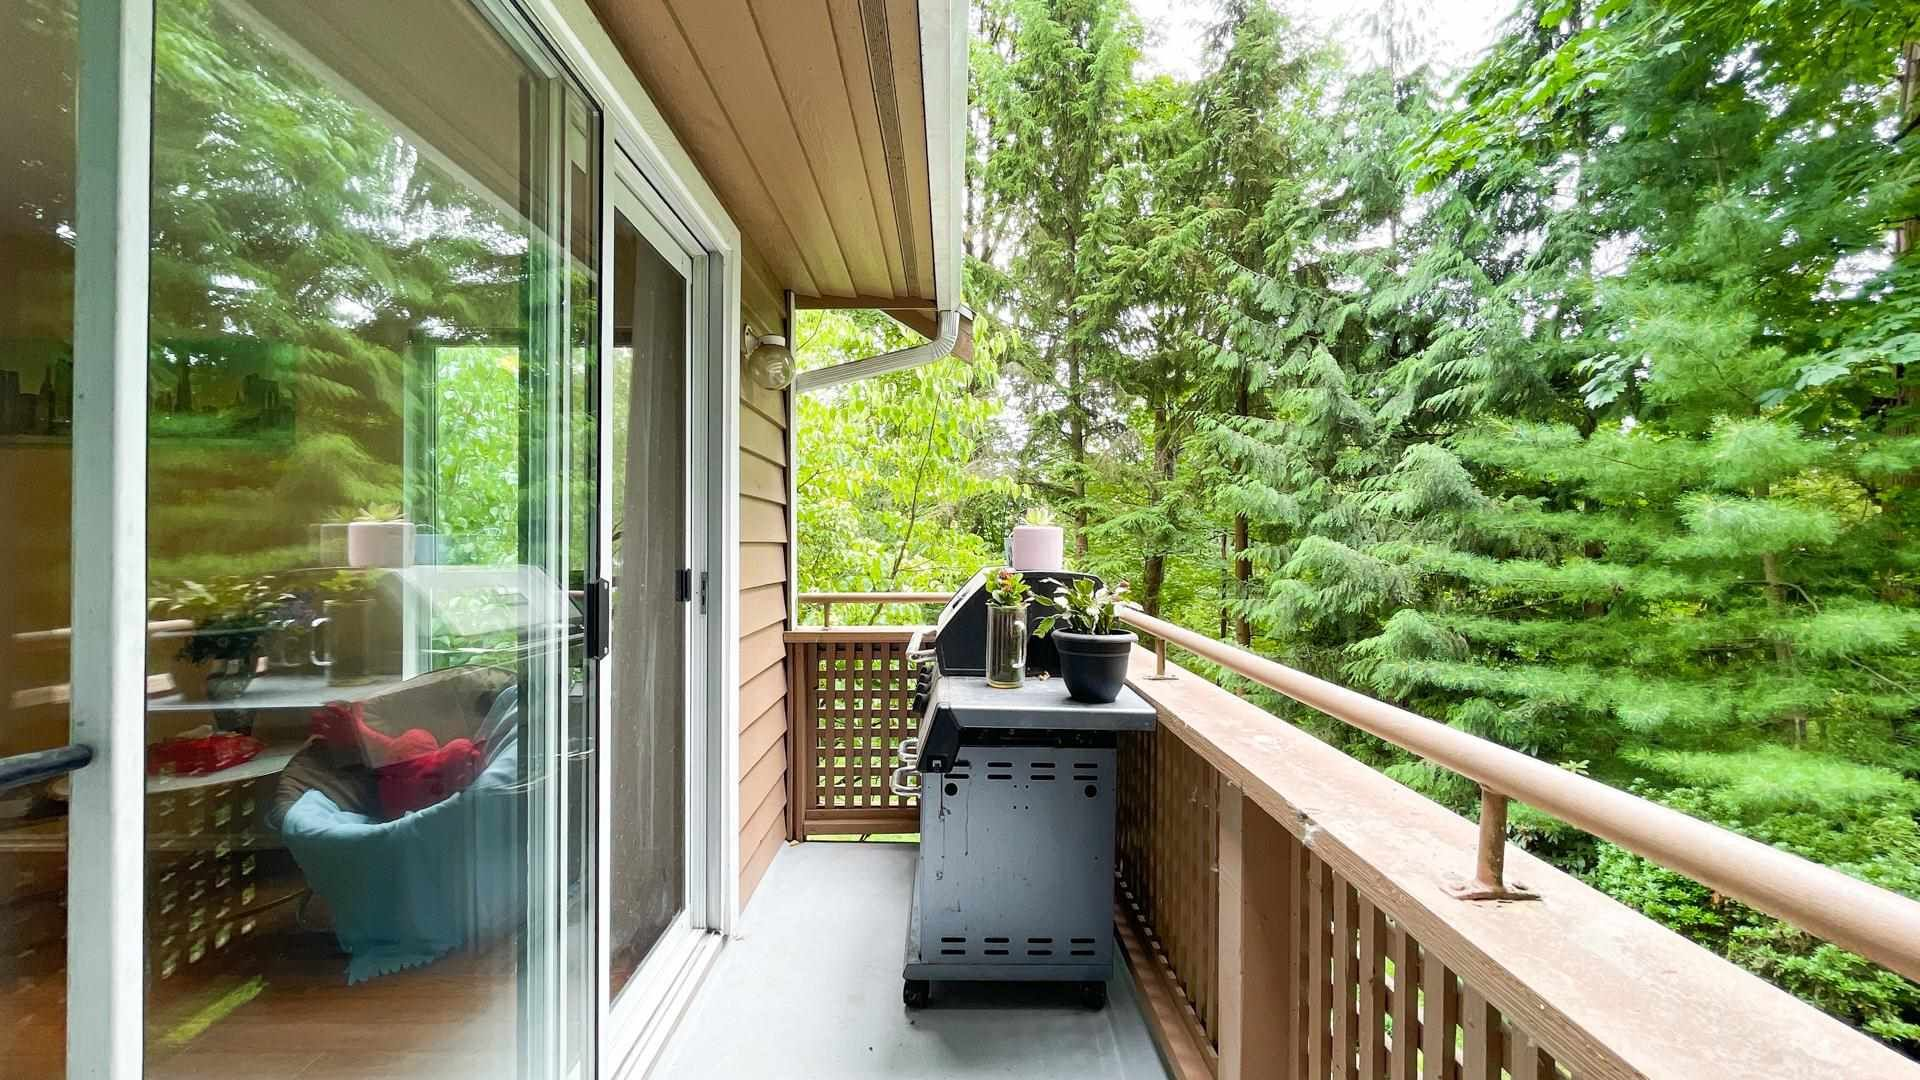 Photo 31: Photos: 66 9000 ASH GROVE CRESCENT in Burnaby: Forest Hills BN Townhouse for sale (Burnaby North)  : MLS®# R2603744